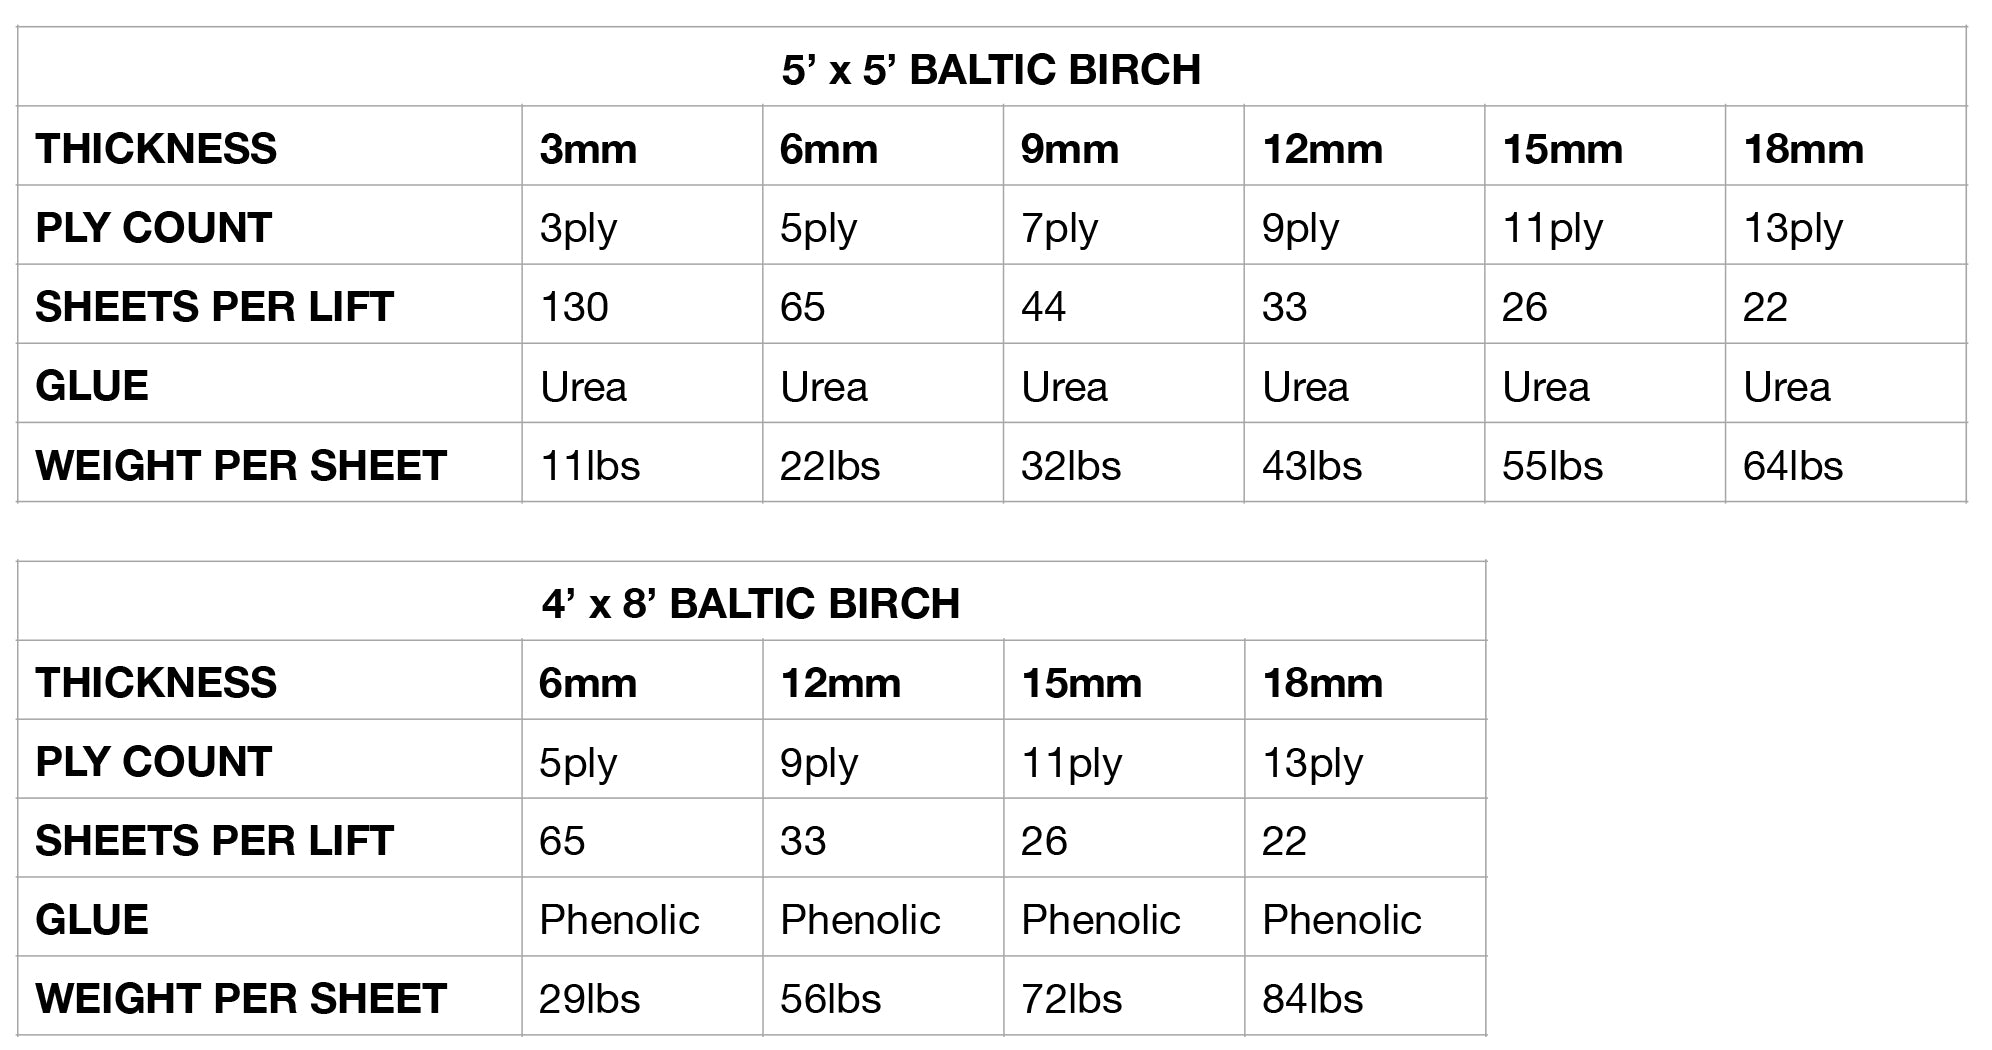 Baltic Birch Specifications